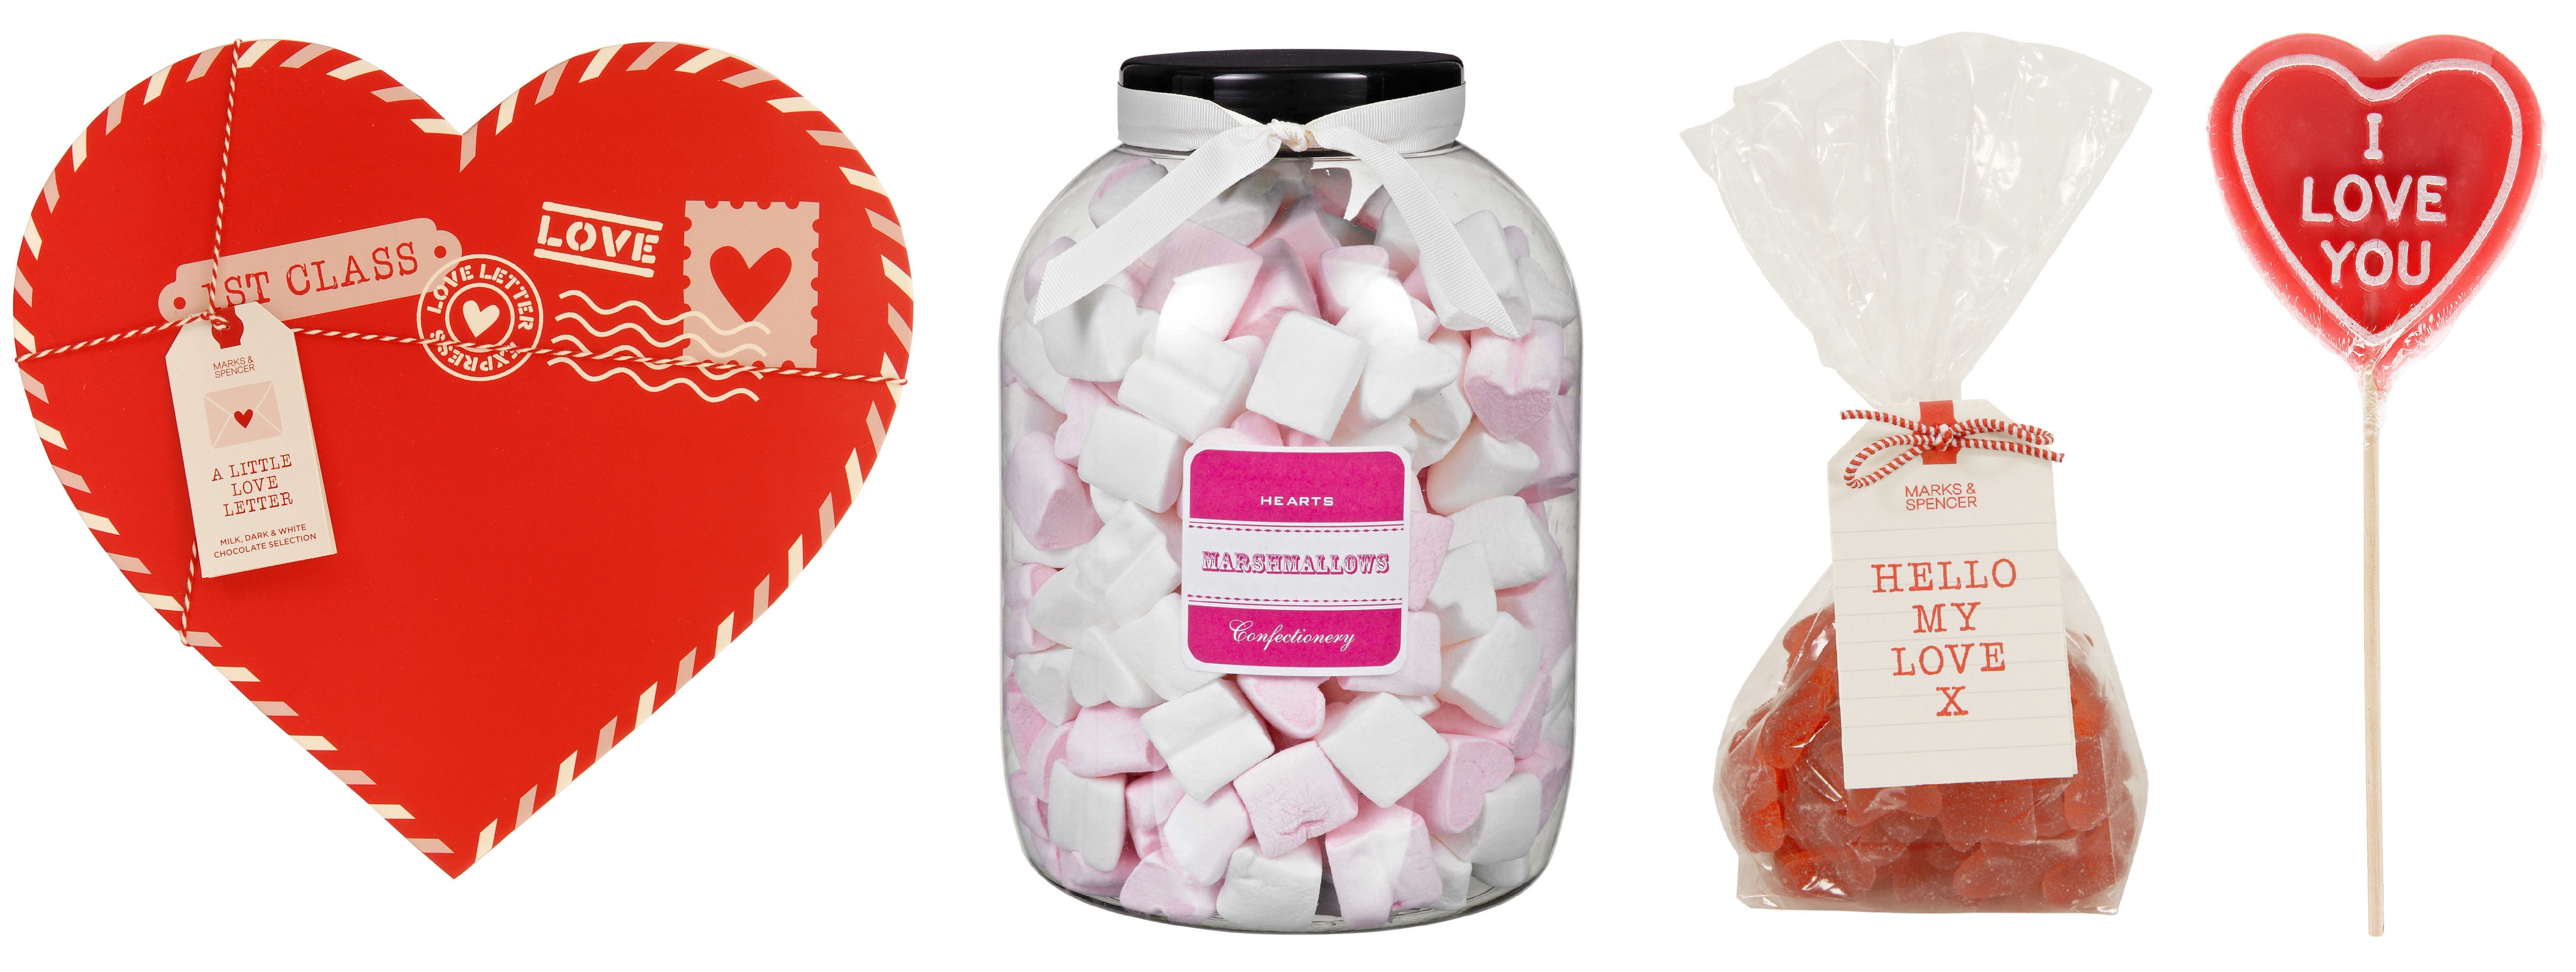 Valentines Cake Decorations Tesco : The Treasure Hunter - well-designed, quirky and fun ...